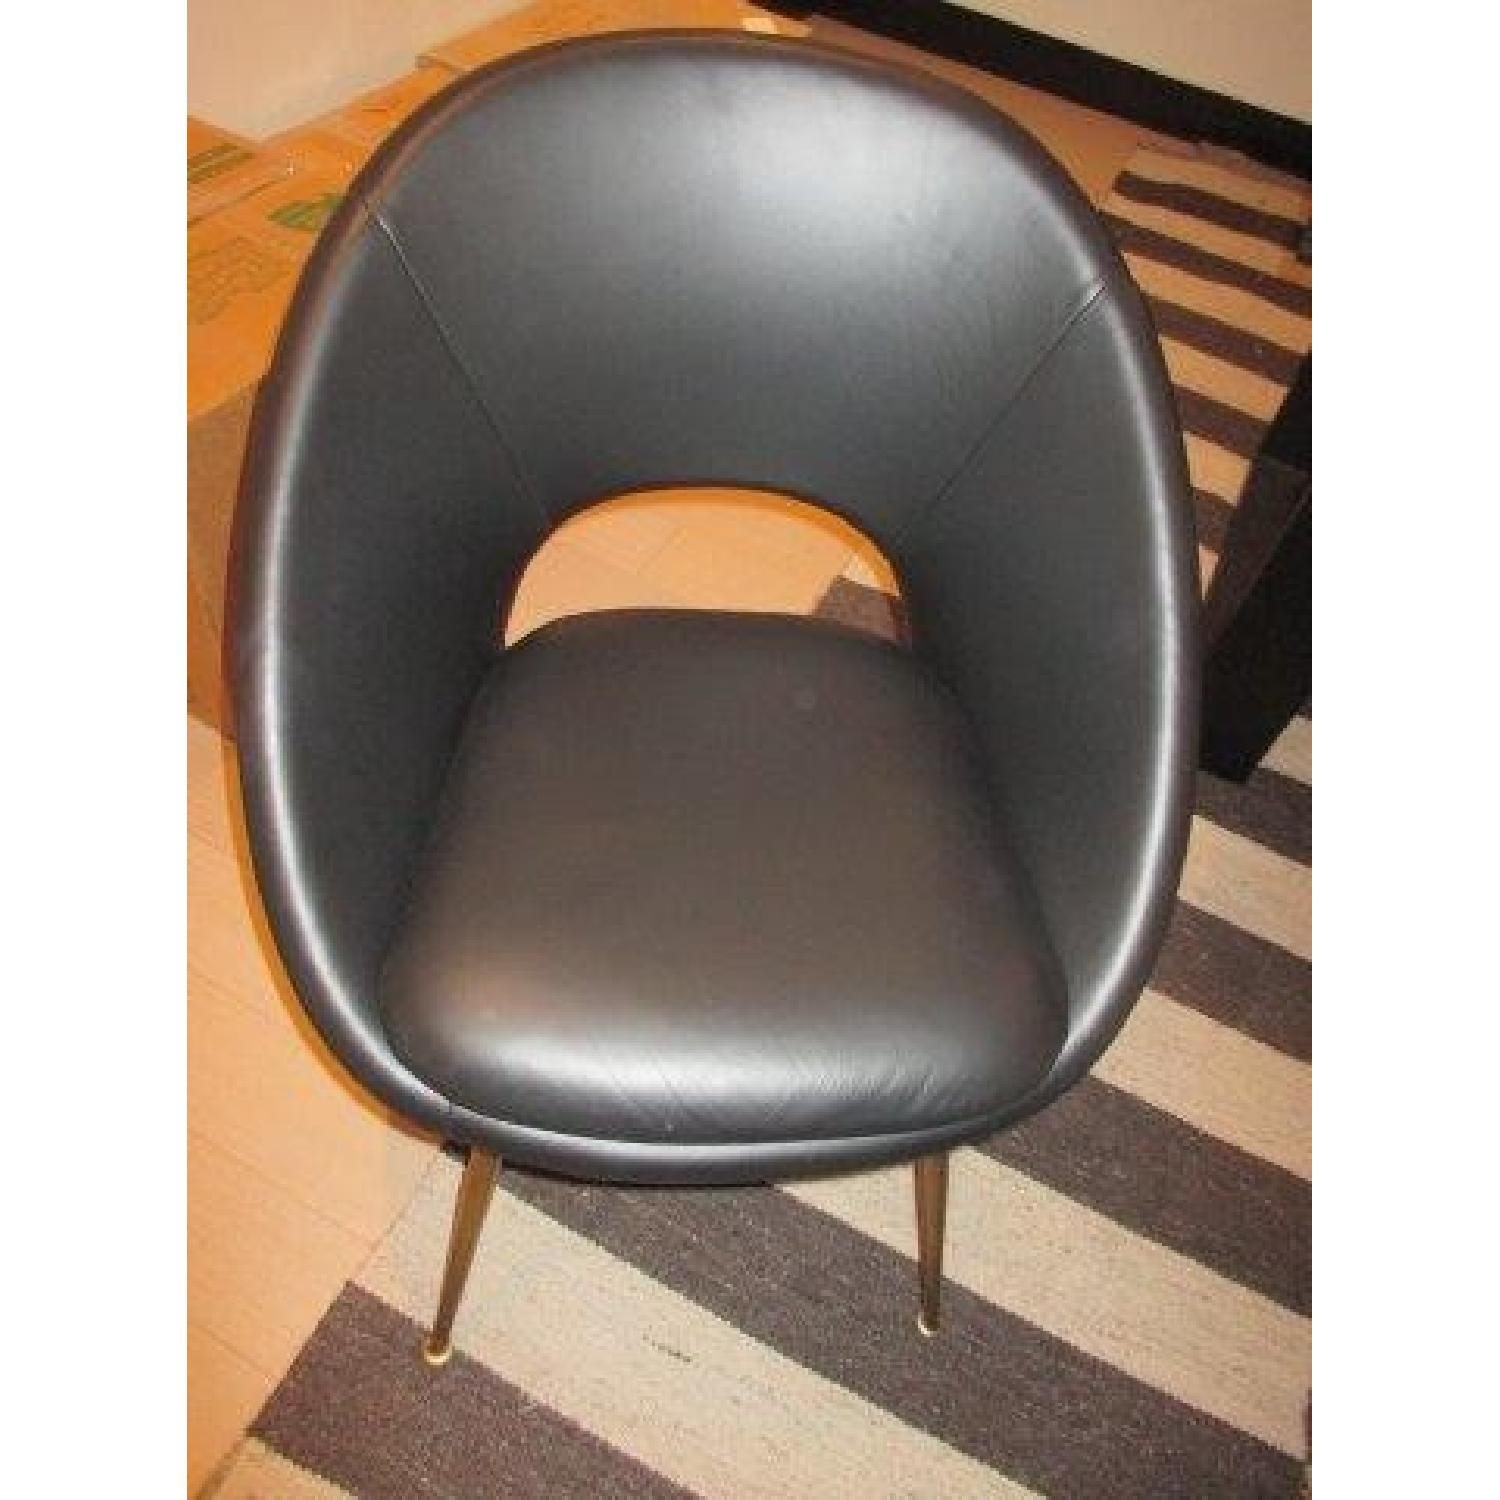 Astounding West Elm Orb Dining Chairs In Black Leather Aptdeco Machost Co Dining Chair Design Ideas Machostcouk